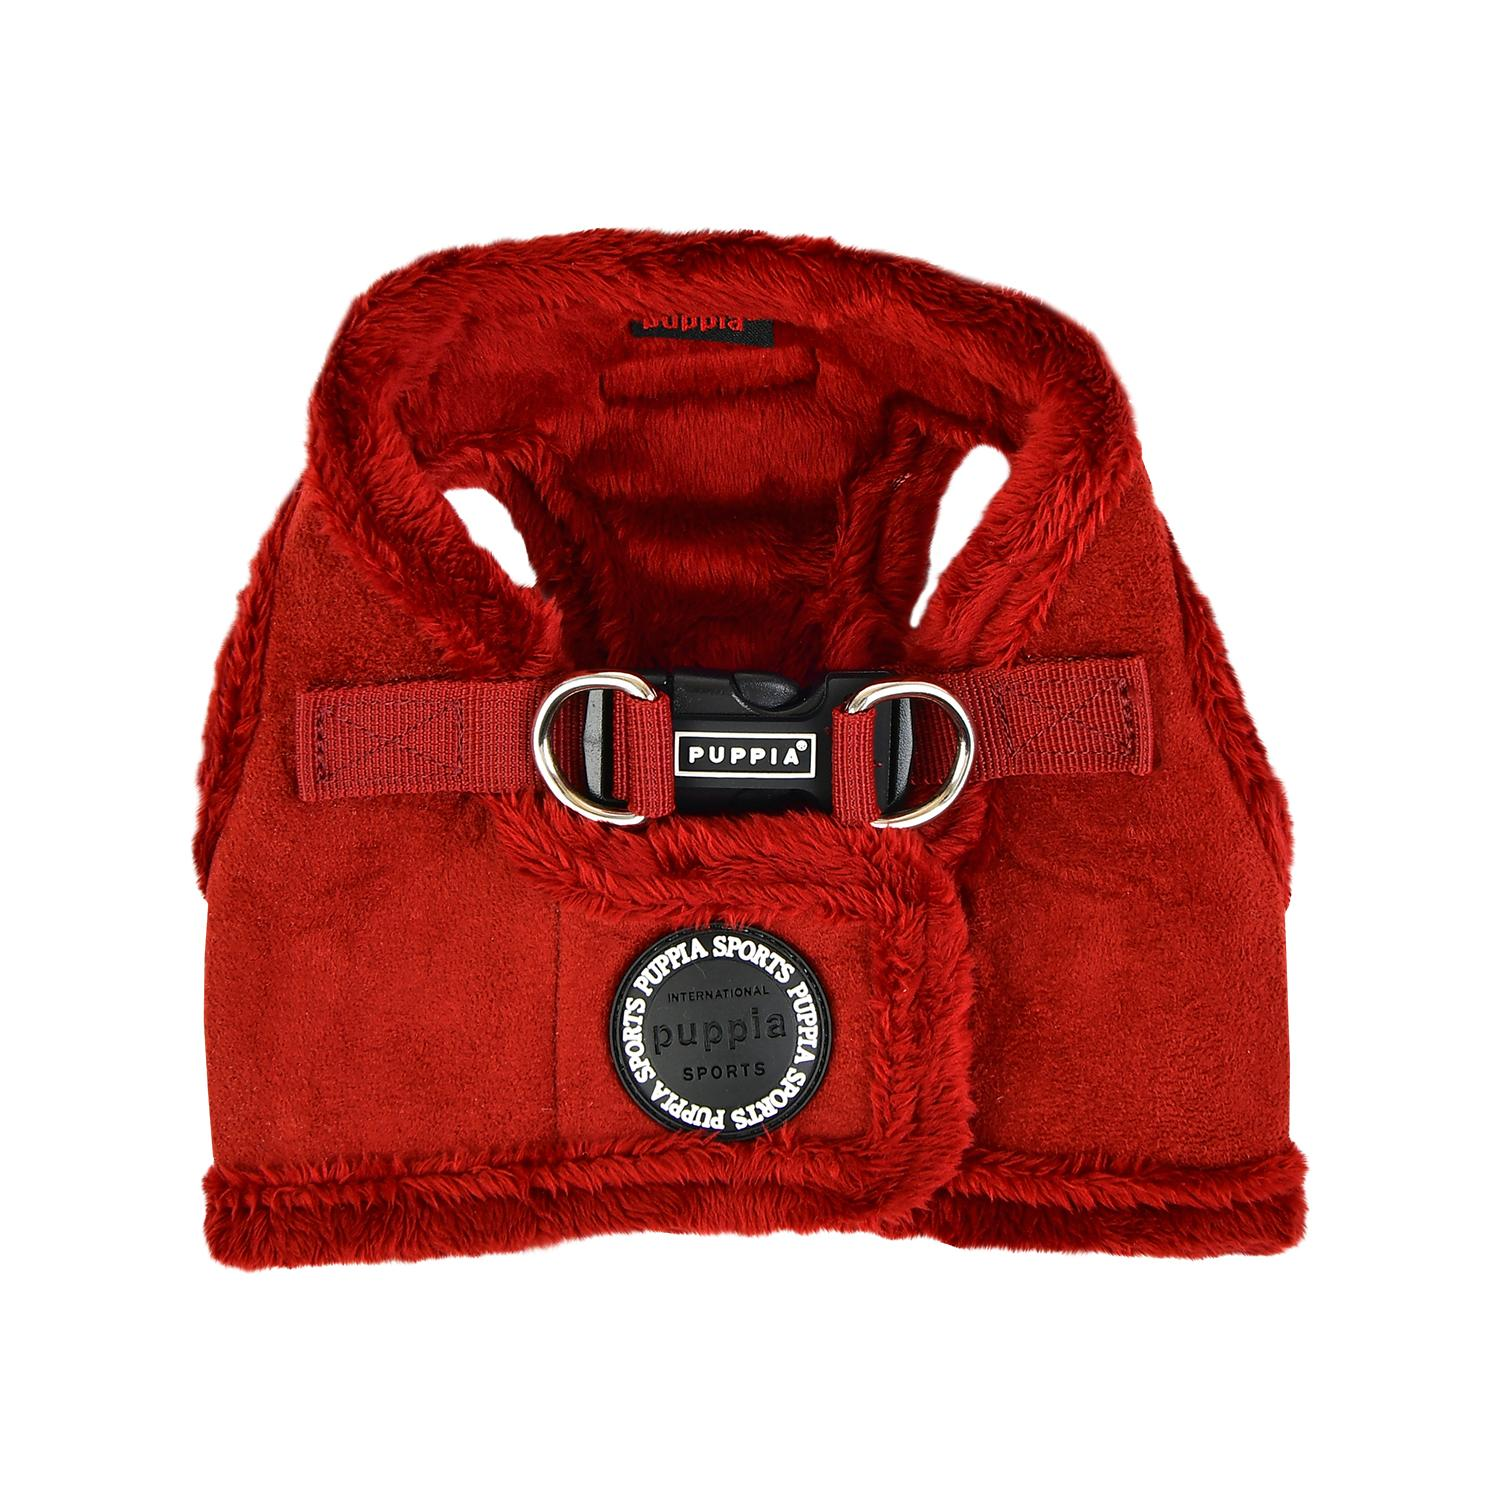 Terry Vest Dog Harness By Puppia - Wine